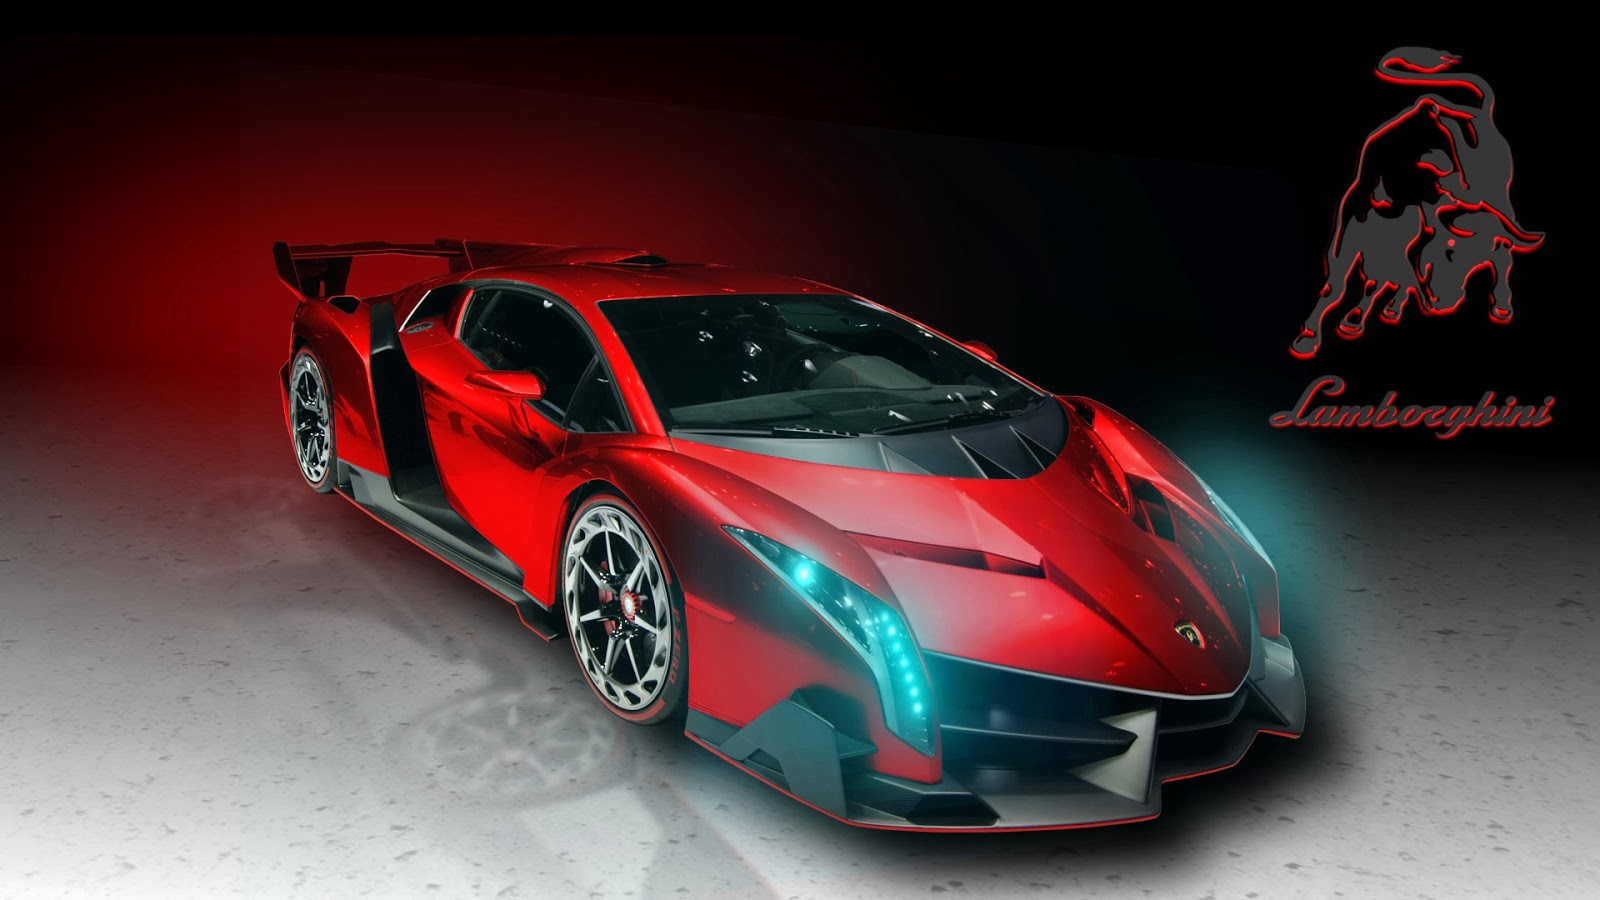 Cars Wallpapers: Lamborghini Beautiful Car Wide Wallpapers